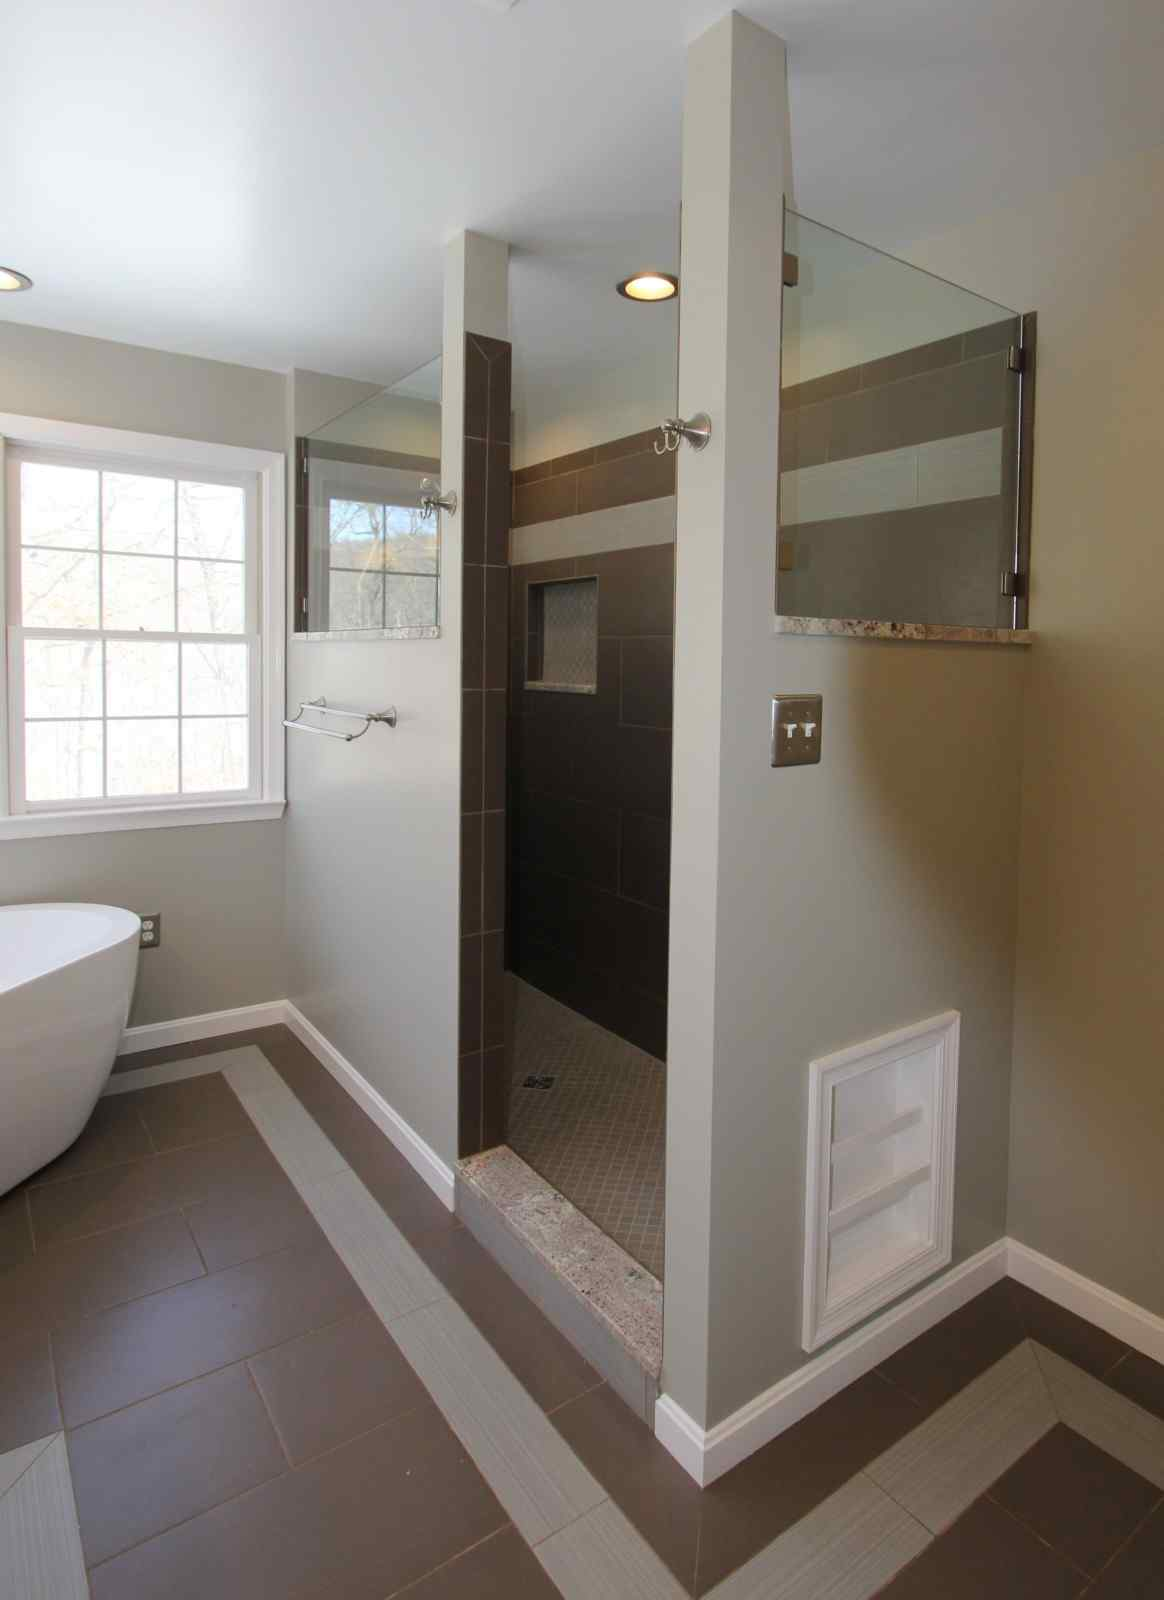 remodeled bathroom with walk-in tub